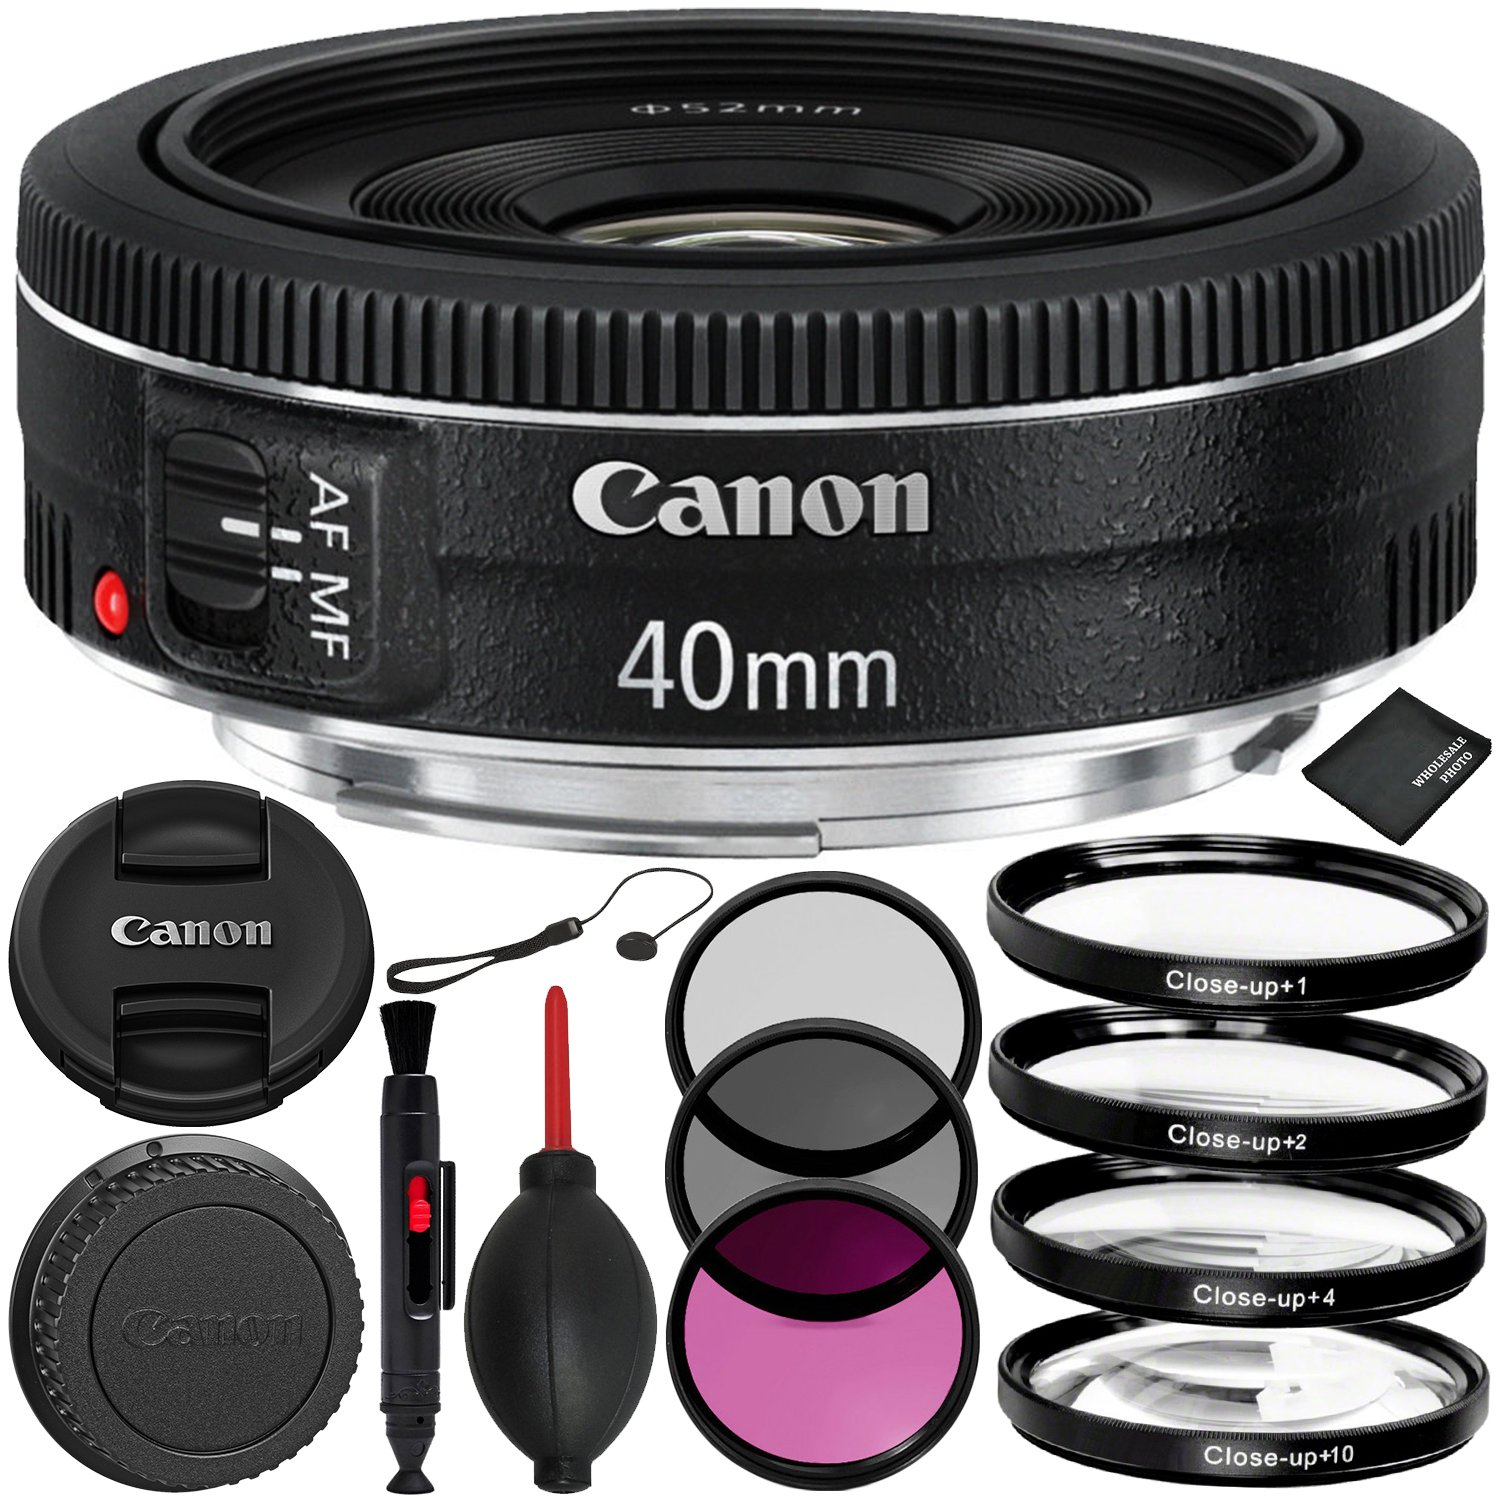 Canon EF 40mm f/2.8 STM Lens - 6PC Accessory Bundle Includes 3 Piece Filter Kit (UV, CPL, FLD) + 4 Piece Macro Filter Set (+1, +2, +4, +10) + Dust Blower + Lens Cap Keeper + MORE